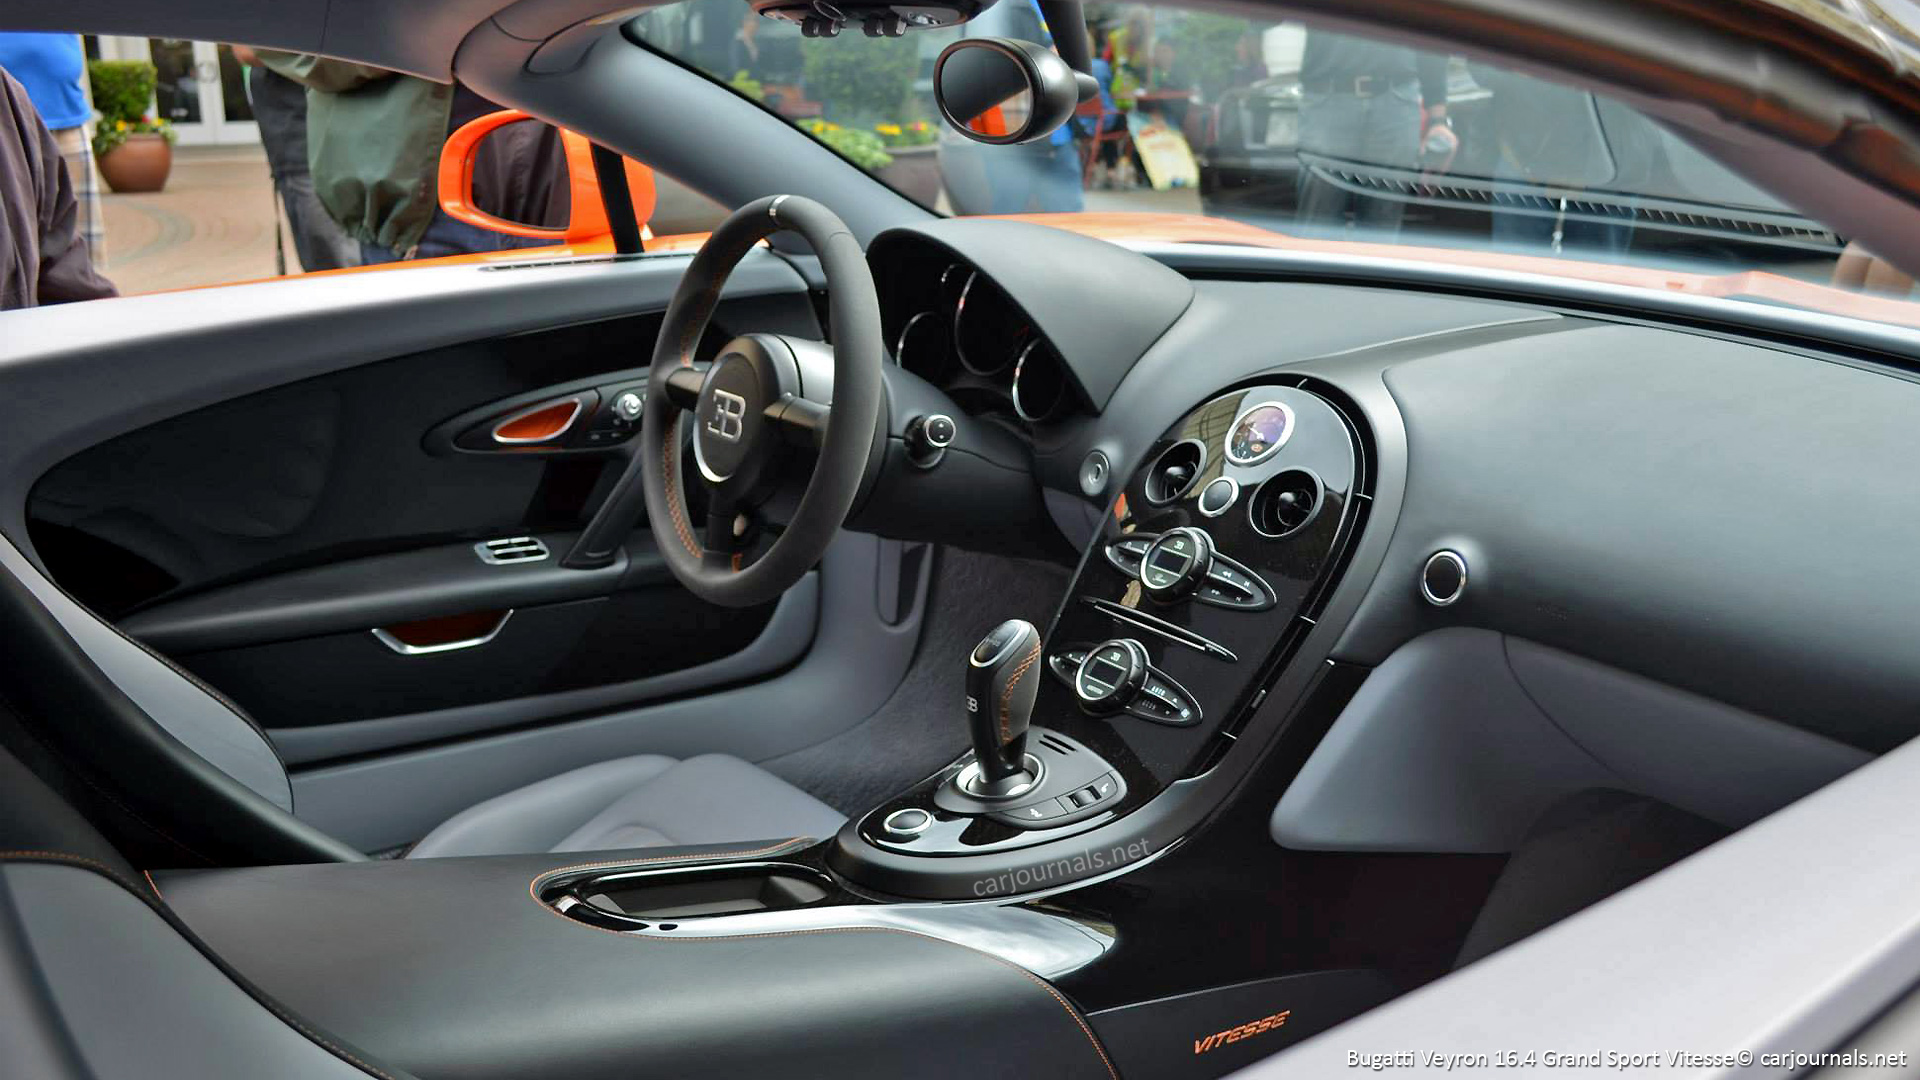 Bugatti Veyron 16.4 Grand Sport Vitesse Interior   HD Wallpaper